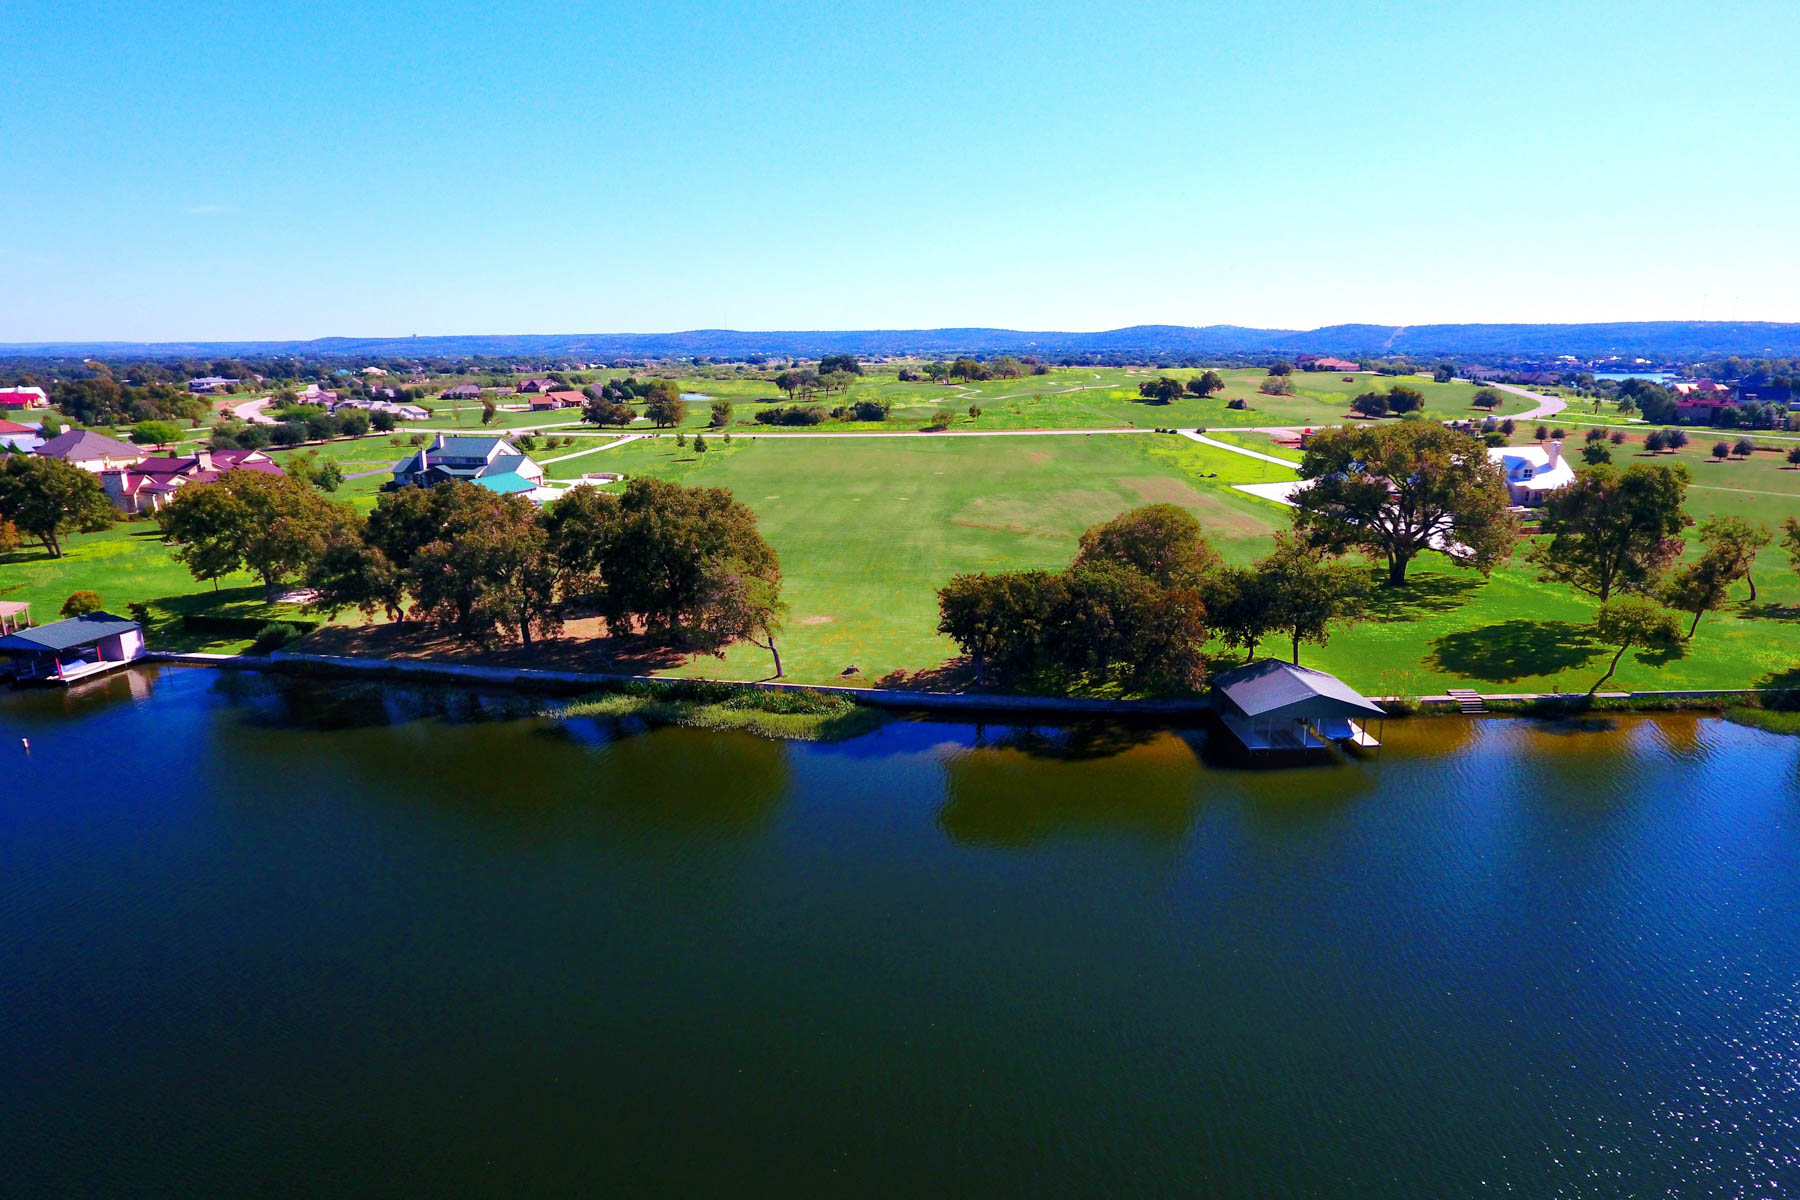 Terreno por un Venta en The Legends on Lake LBJ Lot 1040 Legends Pkwy Kingsland, Texas 78639 Estados Unidos